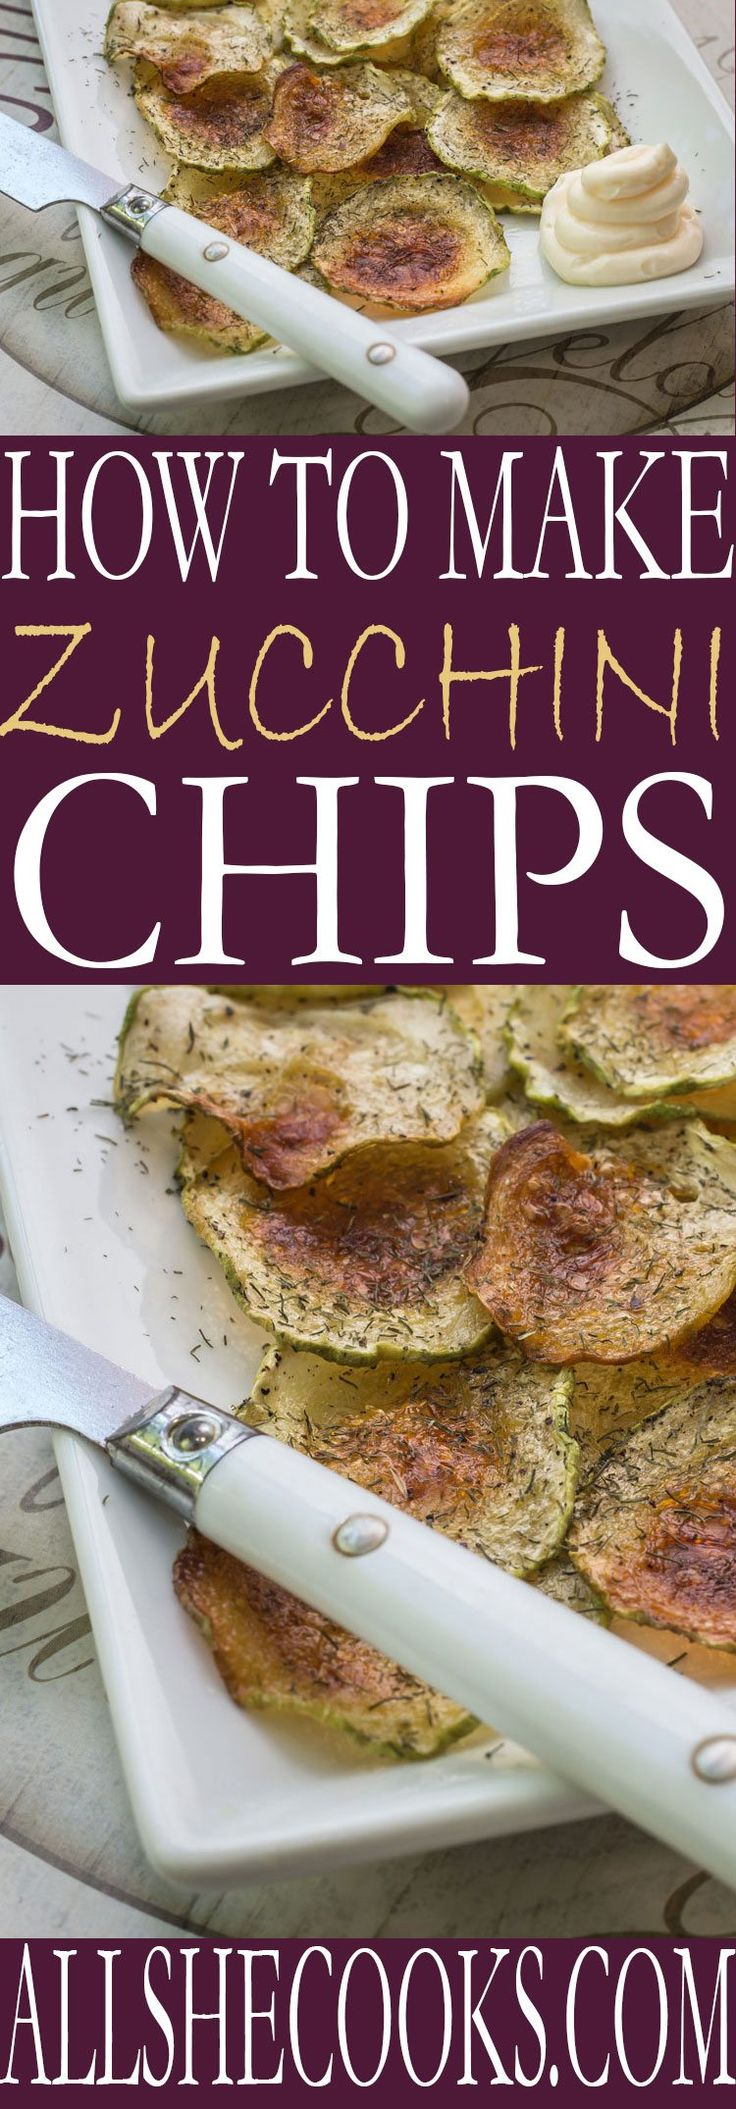 Looking for a healthy snack? Zucchini chips recipe is a healthy and delicious. Add some sea salt or Parmesan cheese for flavor and you've got a winning sncak recipe.